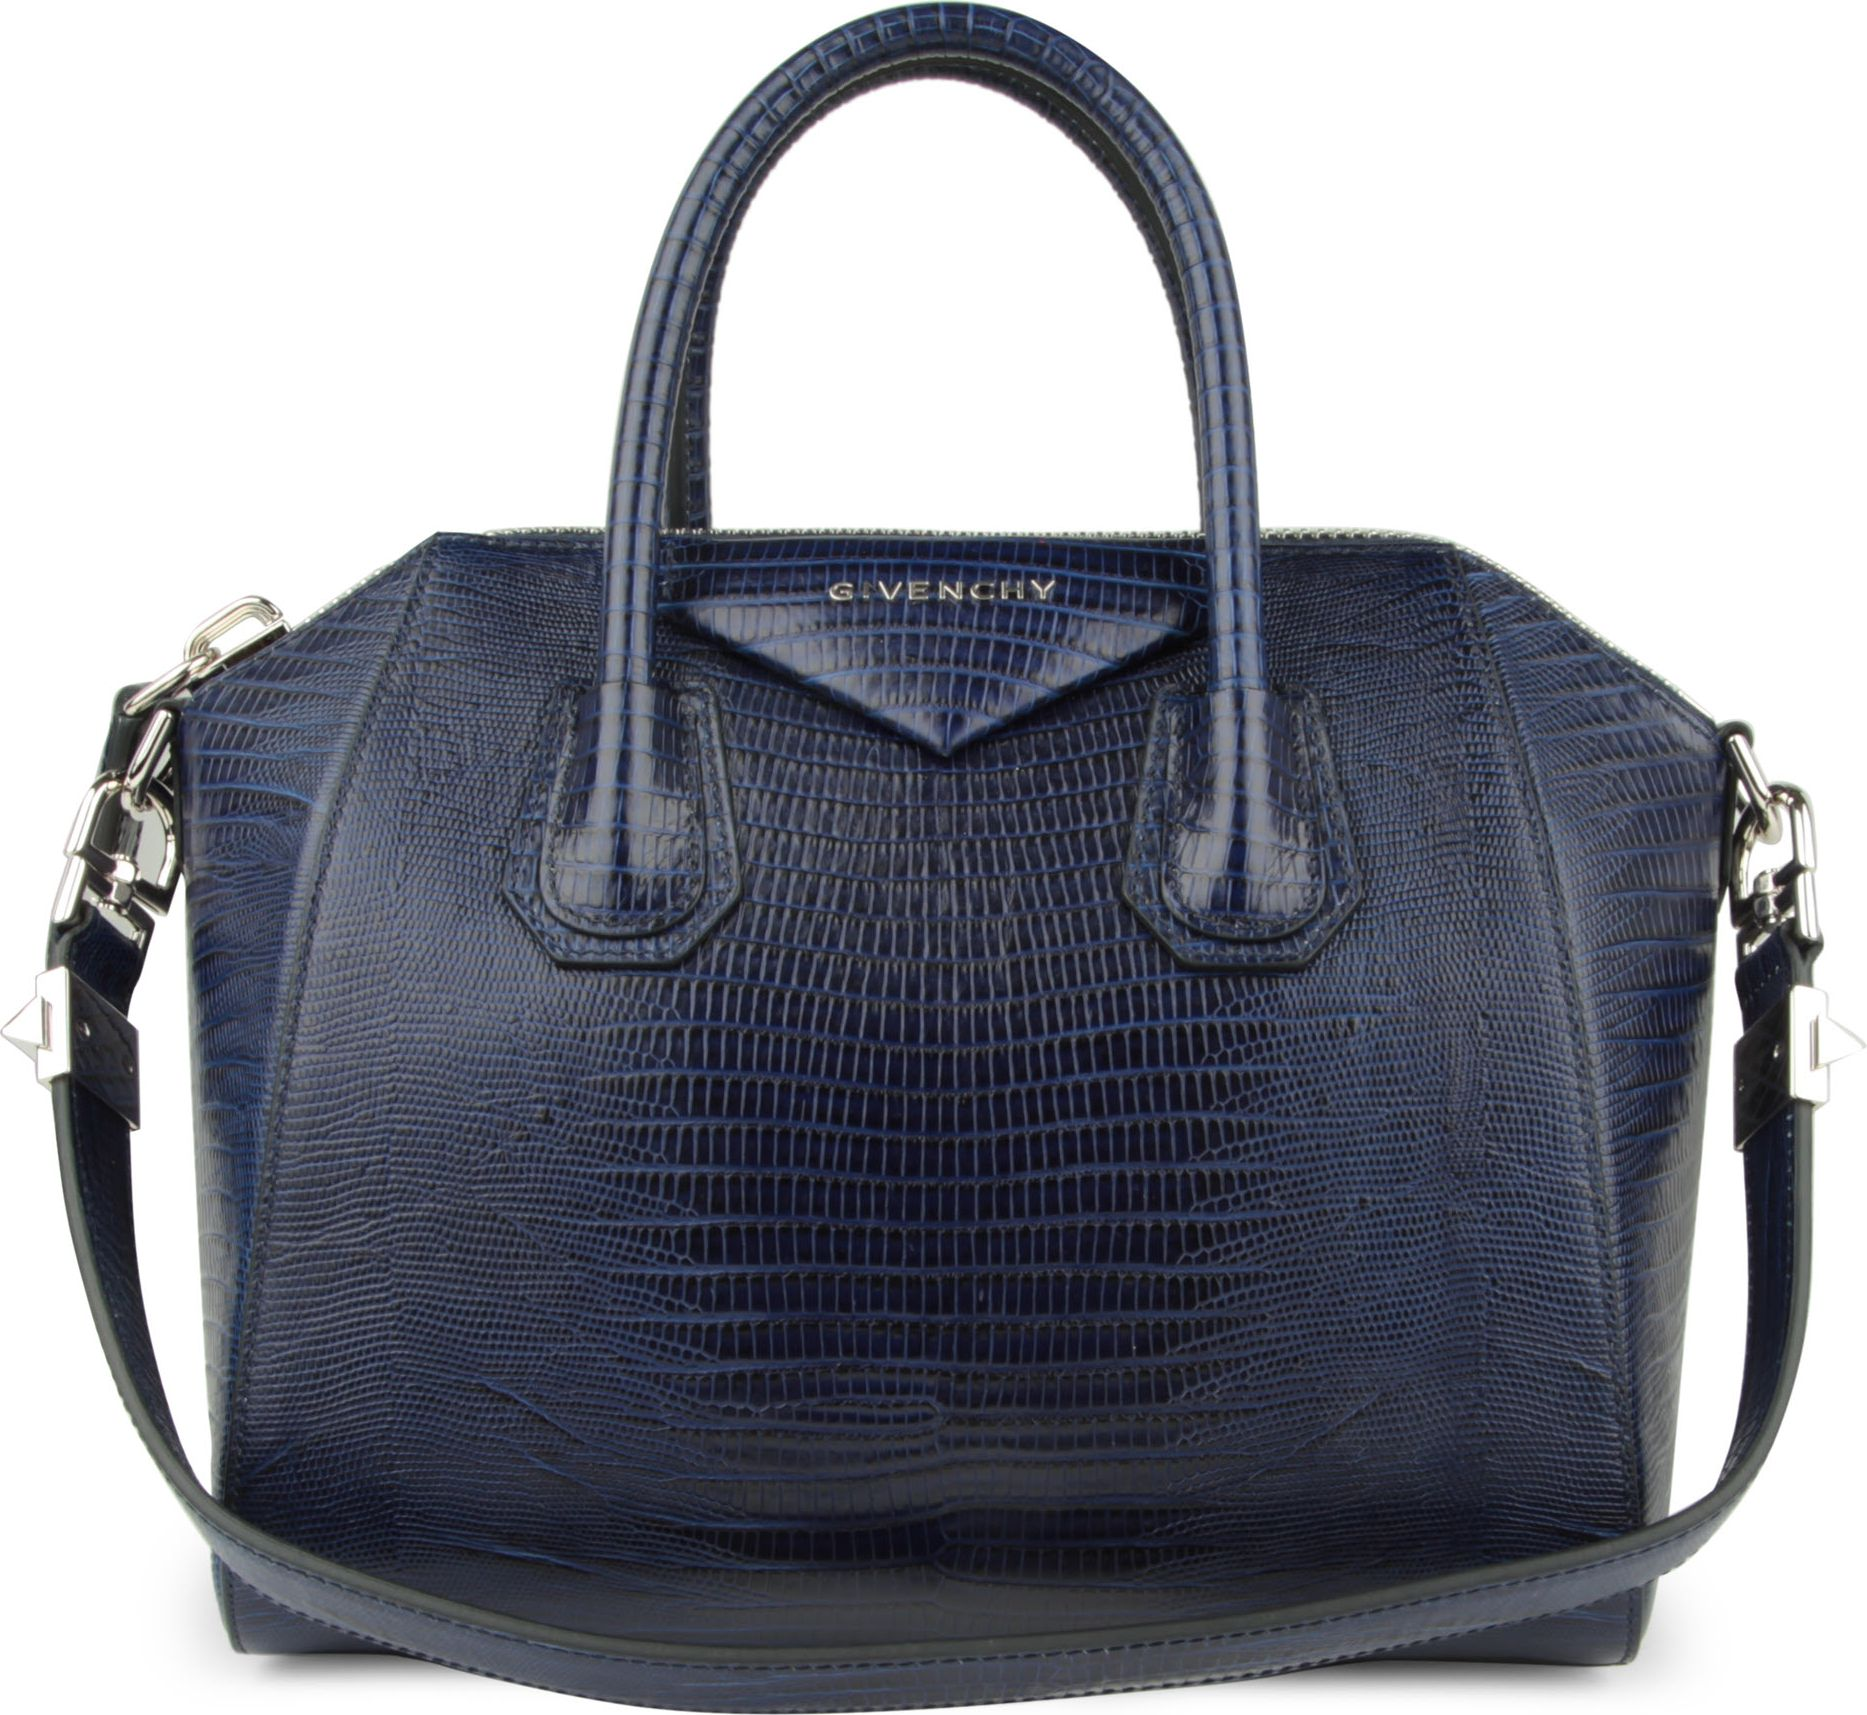 Givenchy antigona small mocklizard tote in blue lyst for Givenchy outlet online